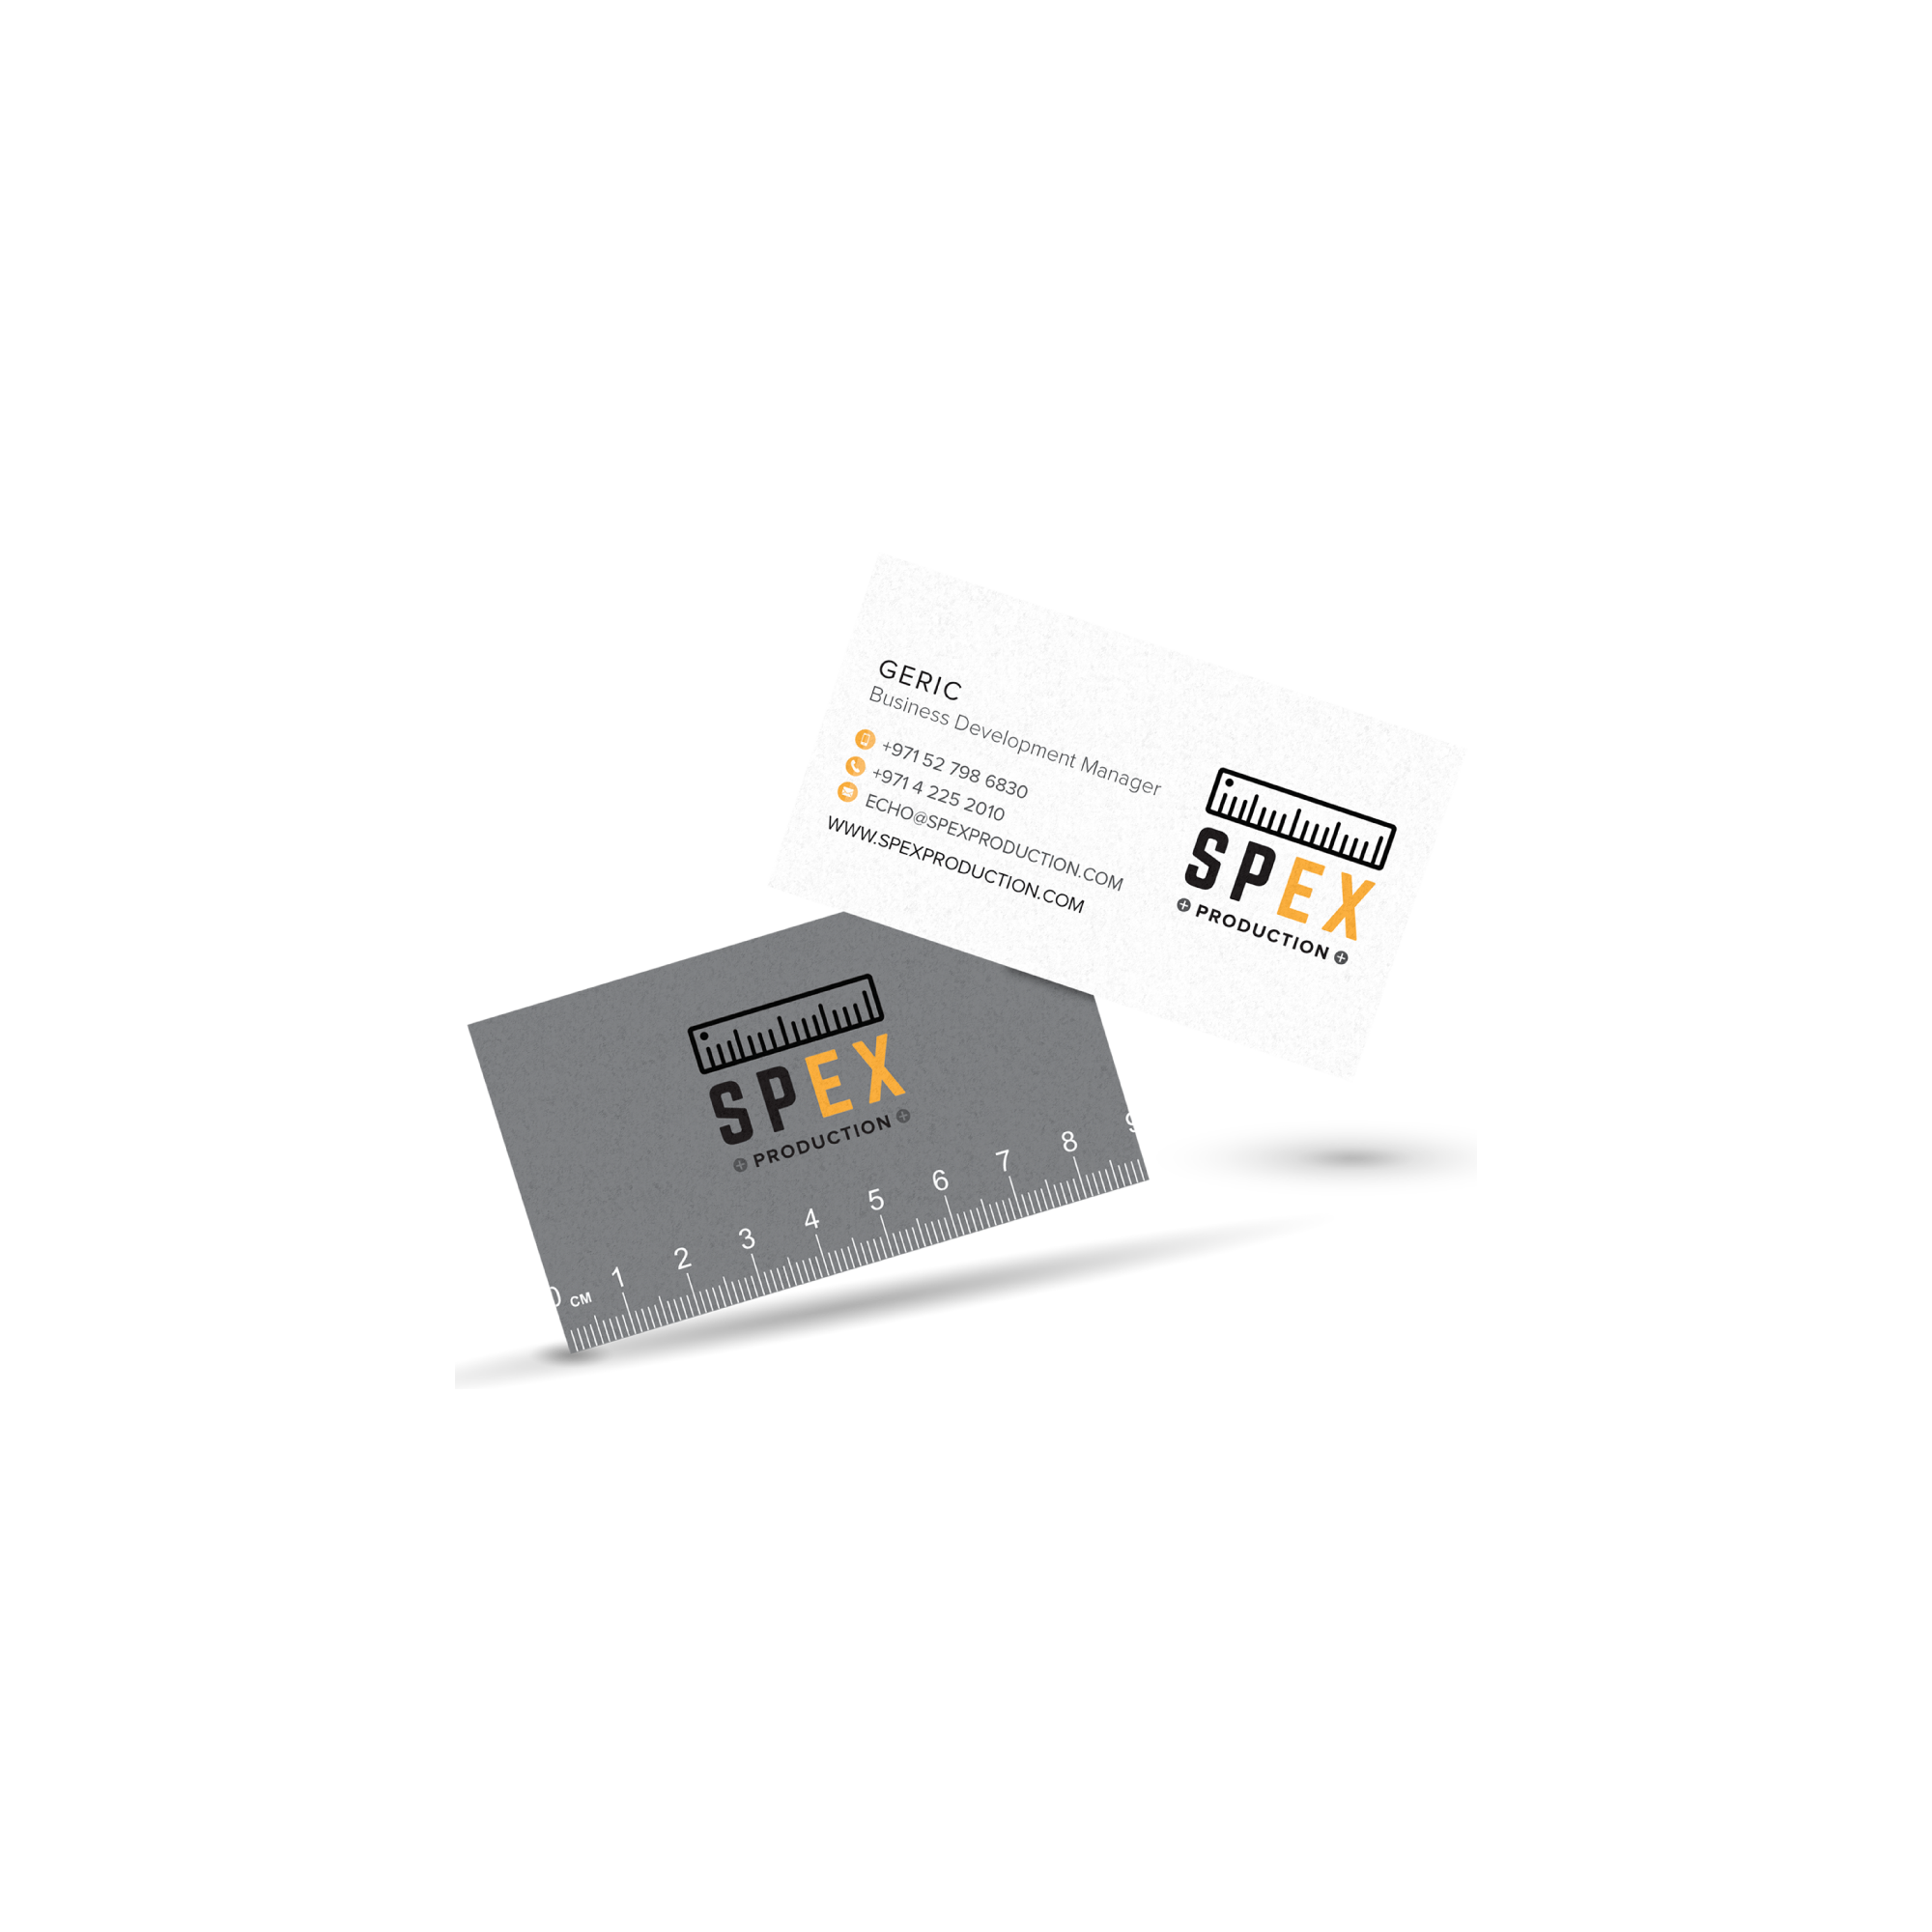 business-ccard